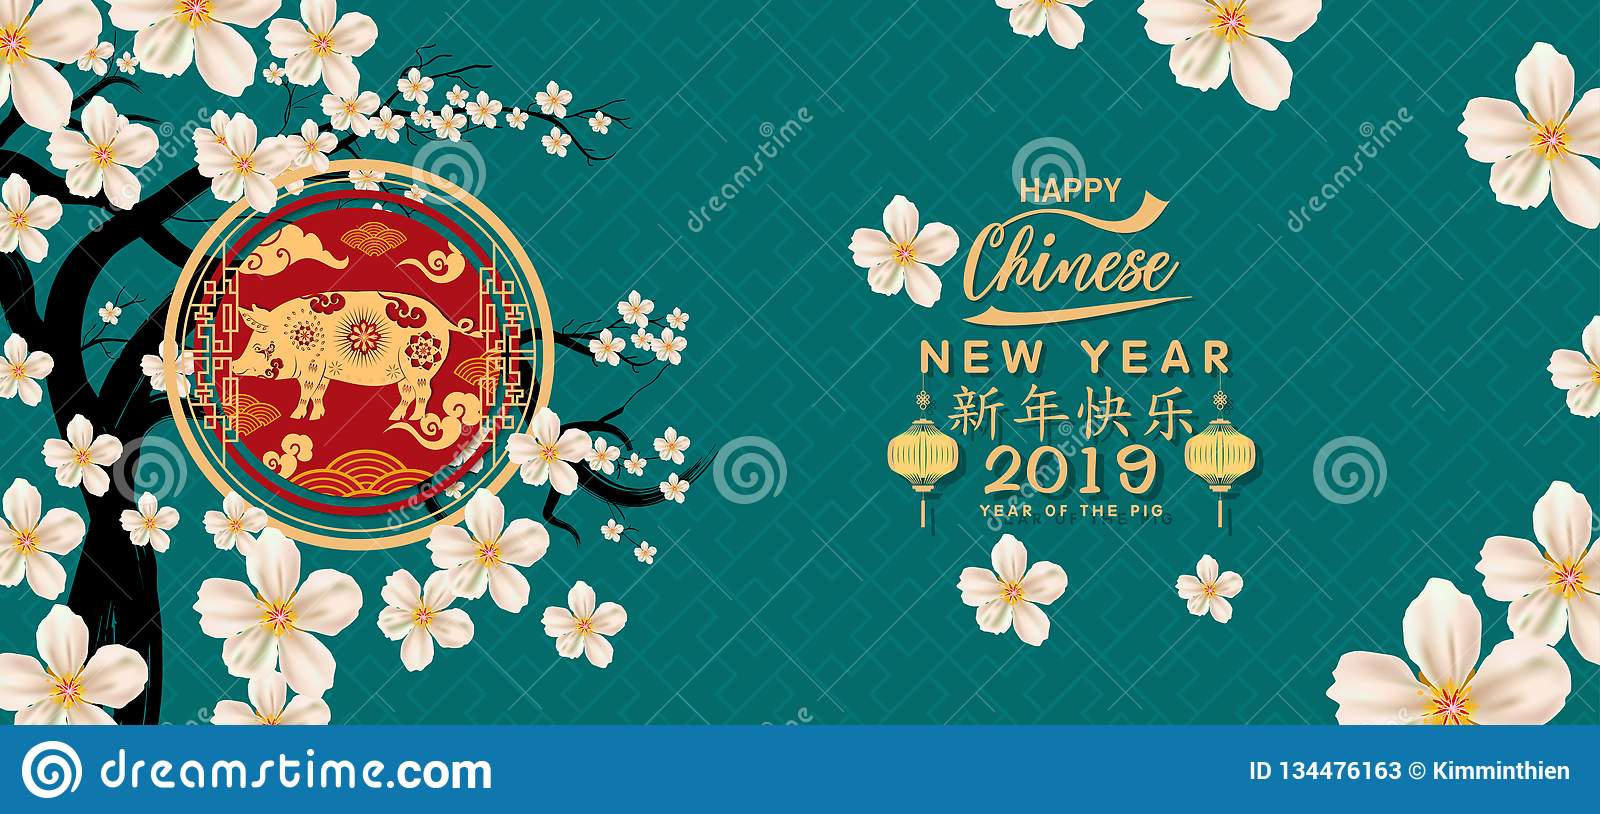 Set Banner Happy Chinese New Year 2019, Year of the Pig. Lunar new year. Chinese characters mean Happy New Year